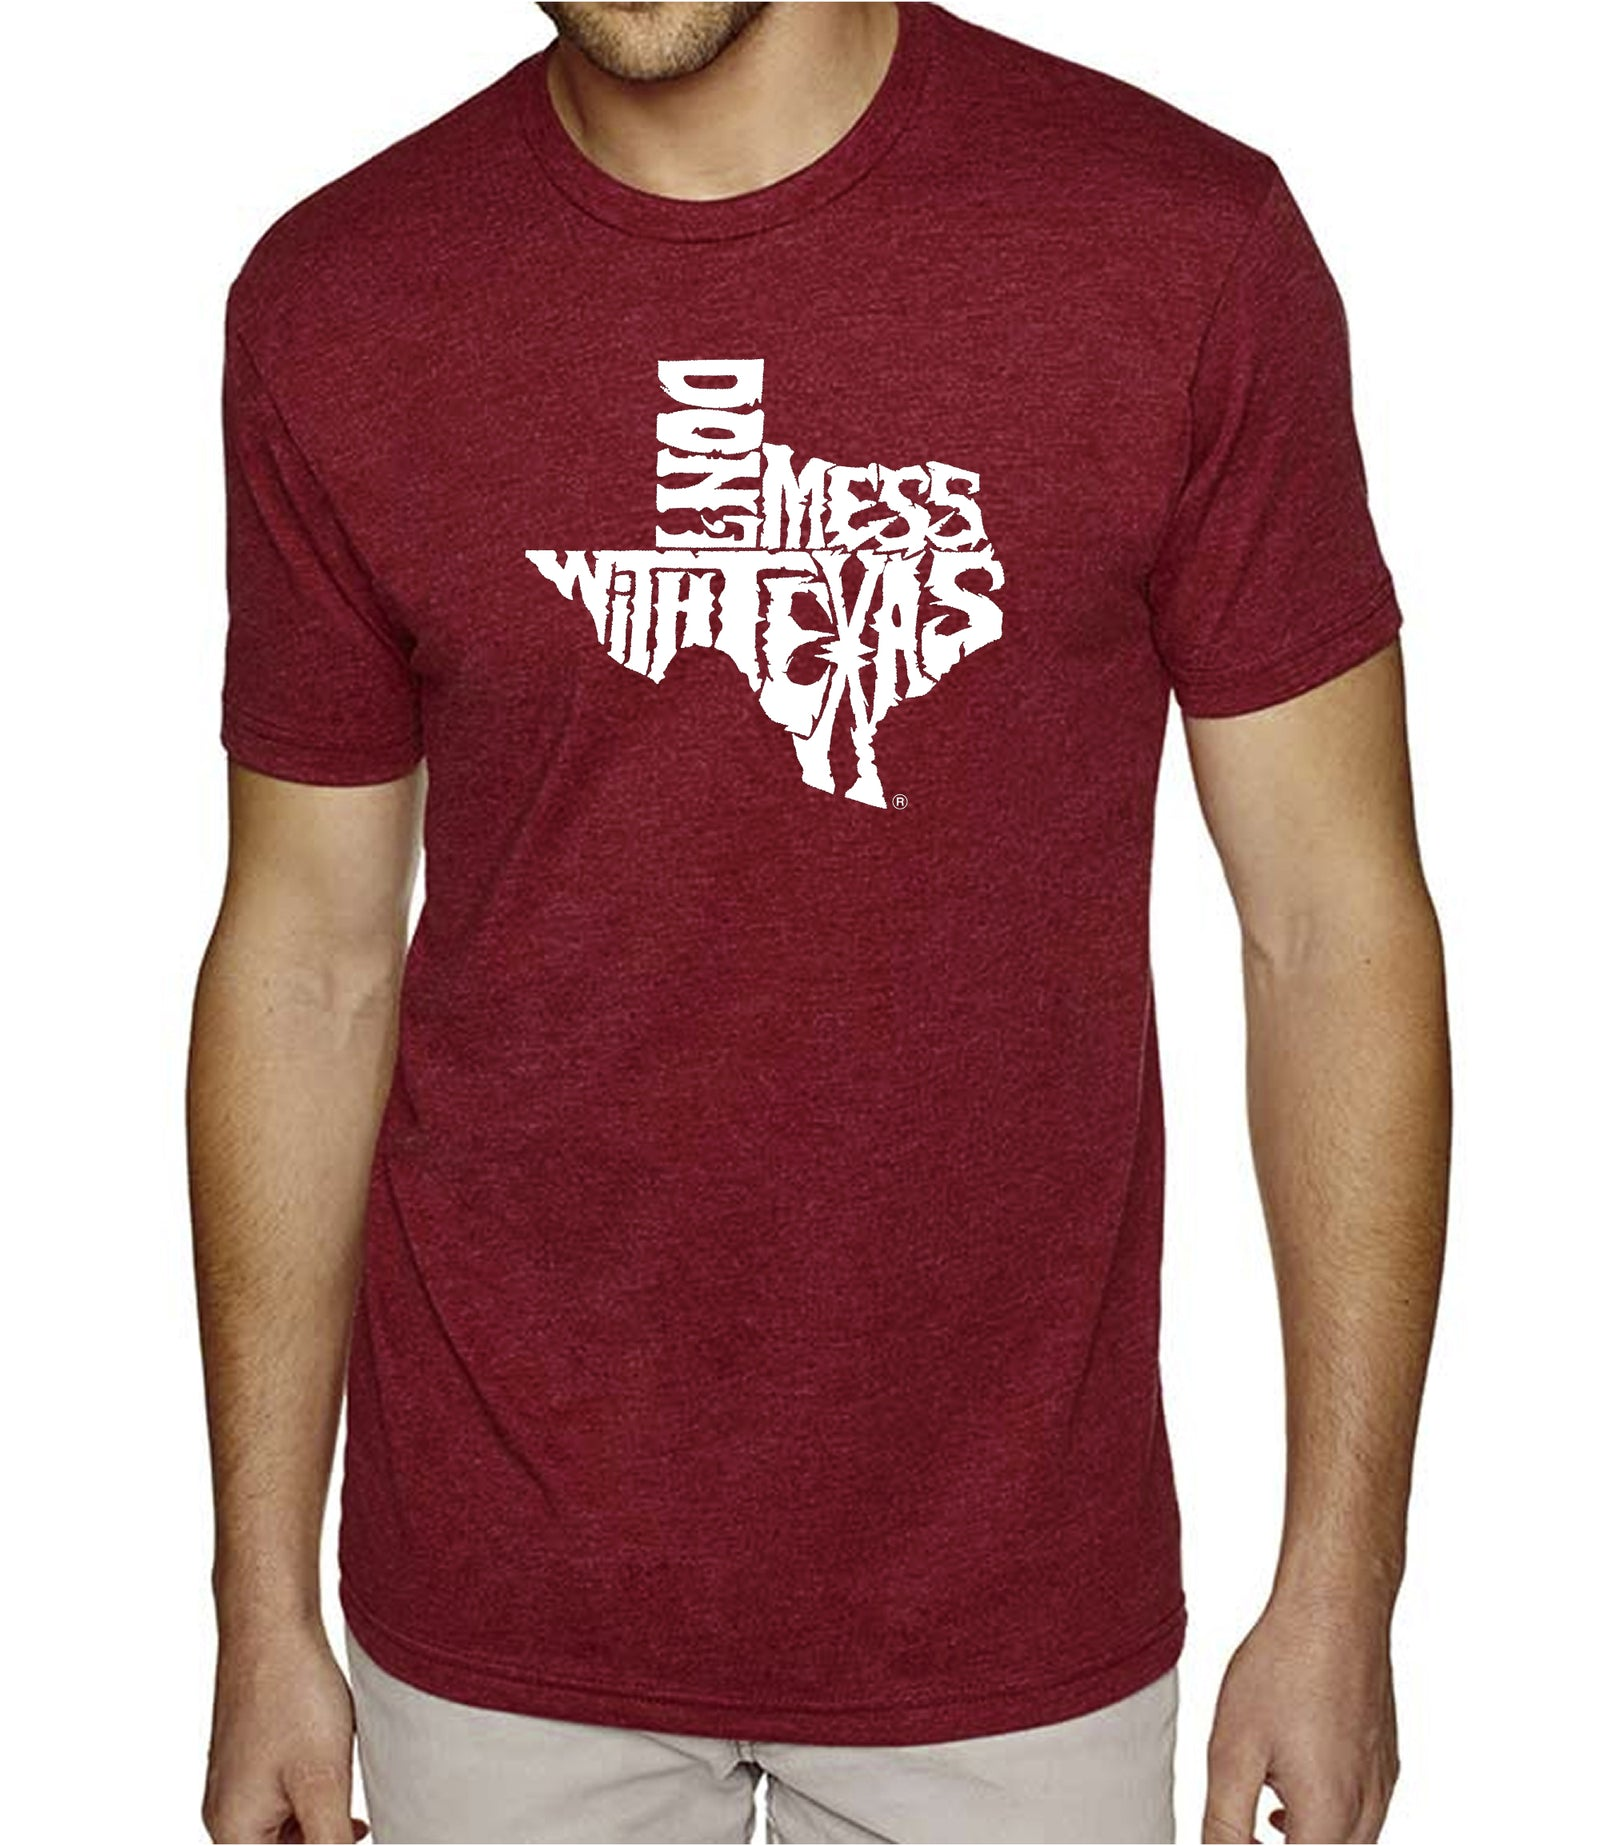 Men's Premium Blend Word Art T-shirt - DONT MESS WITH TEXAS